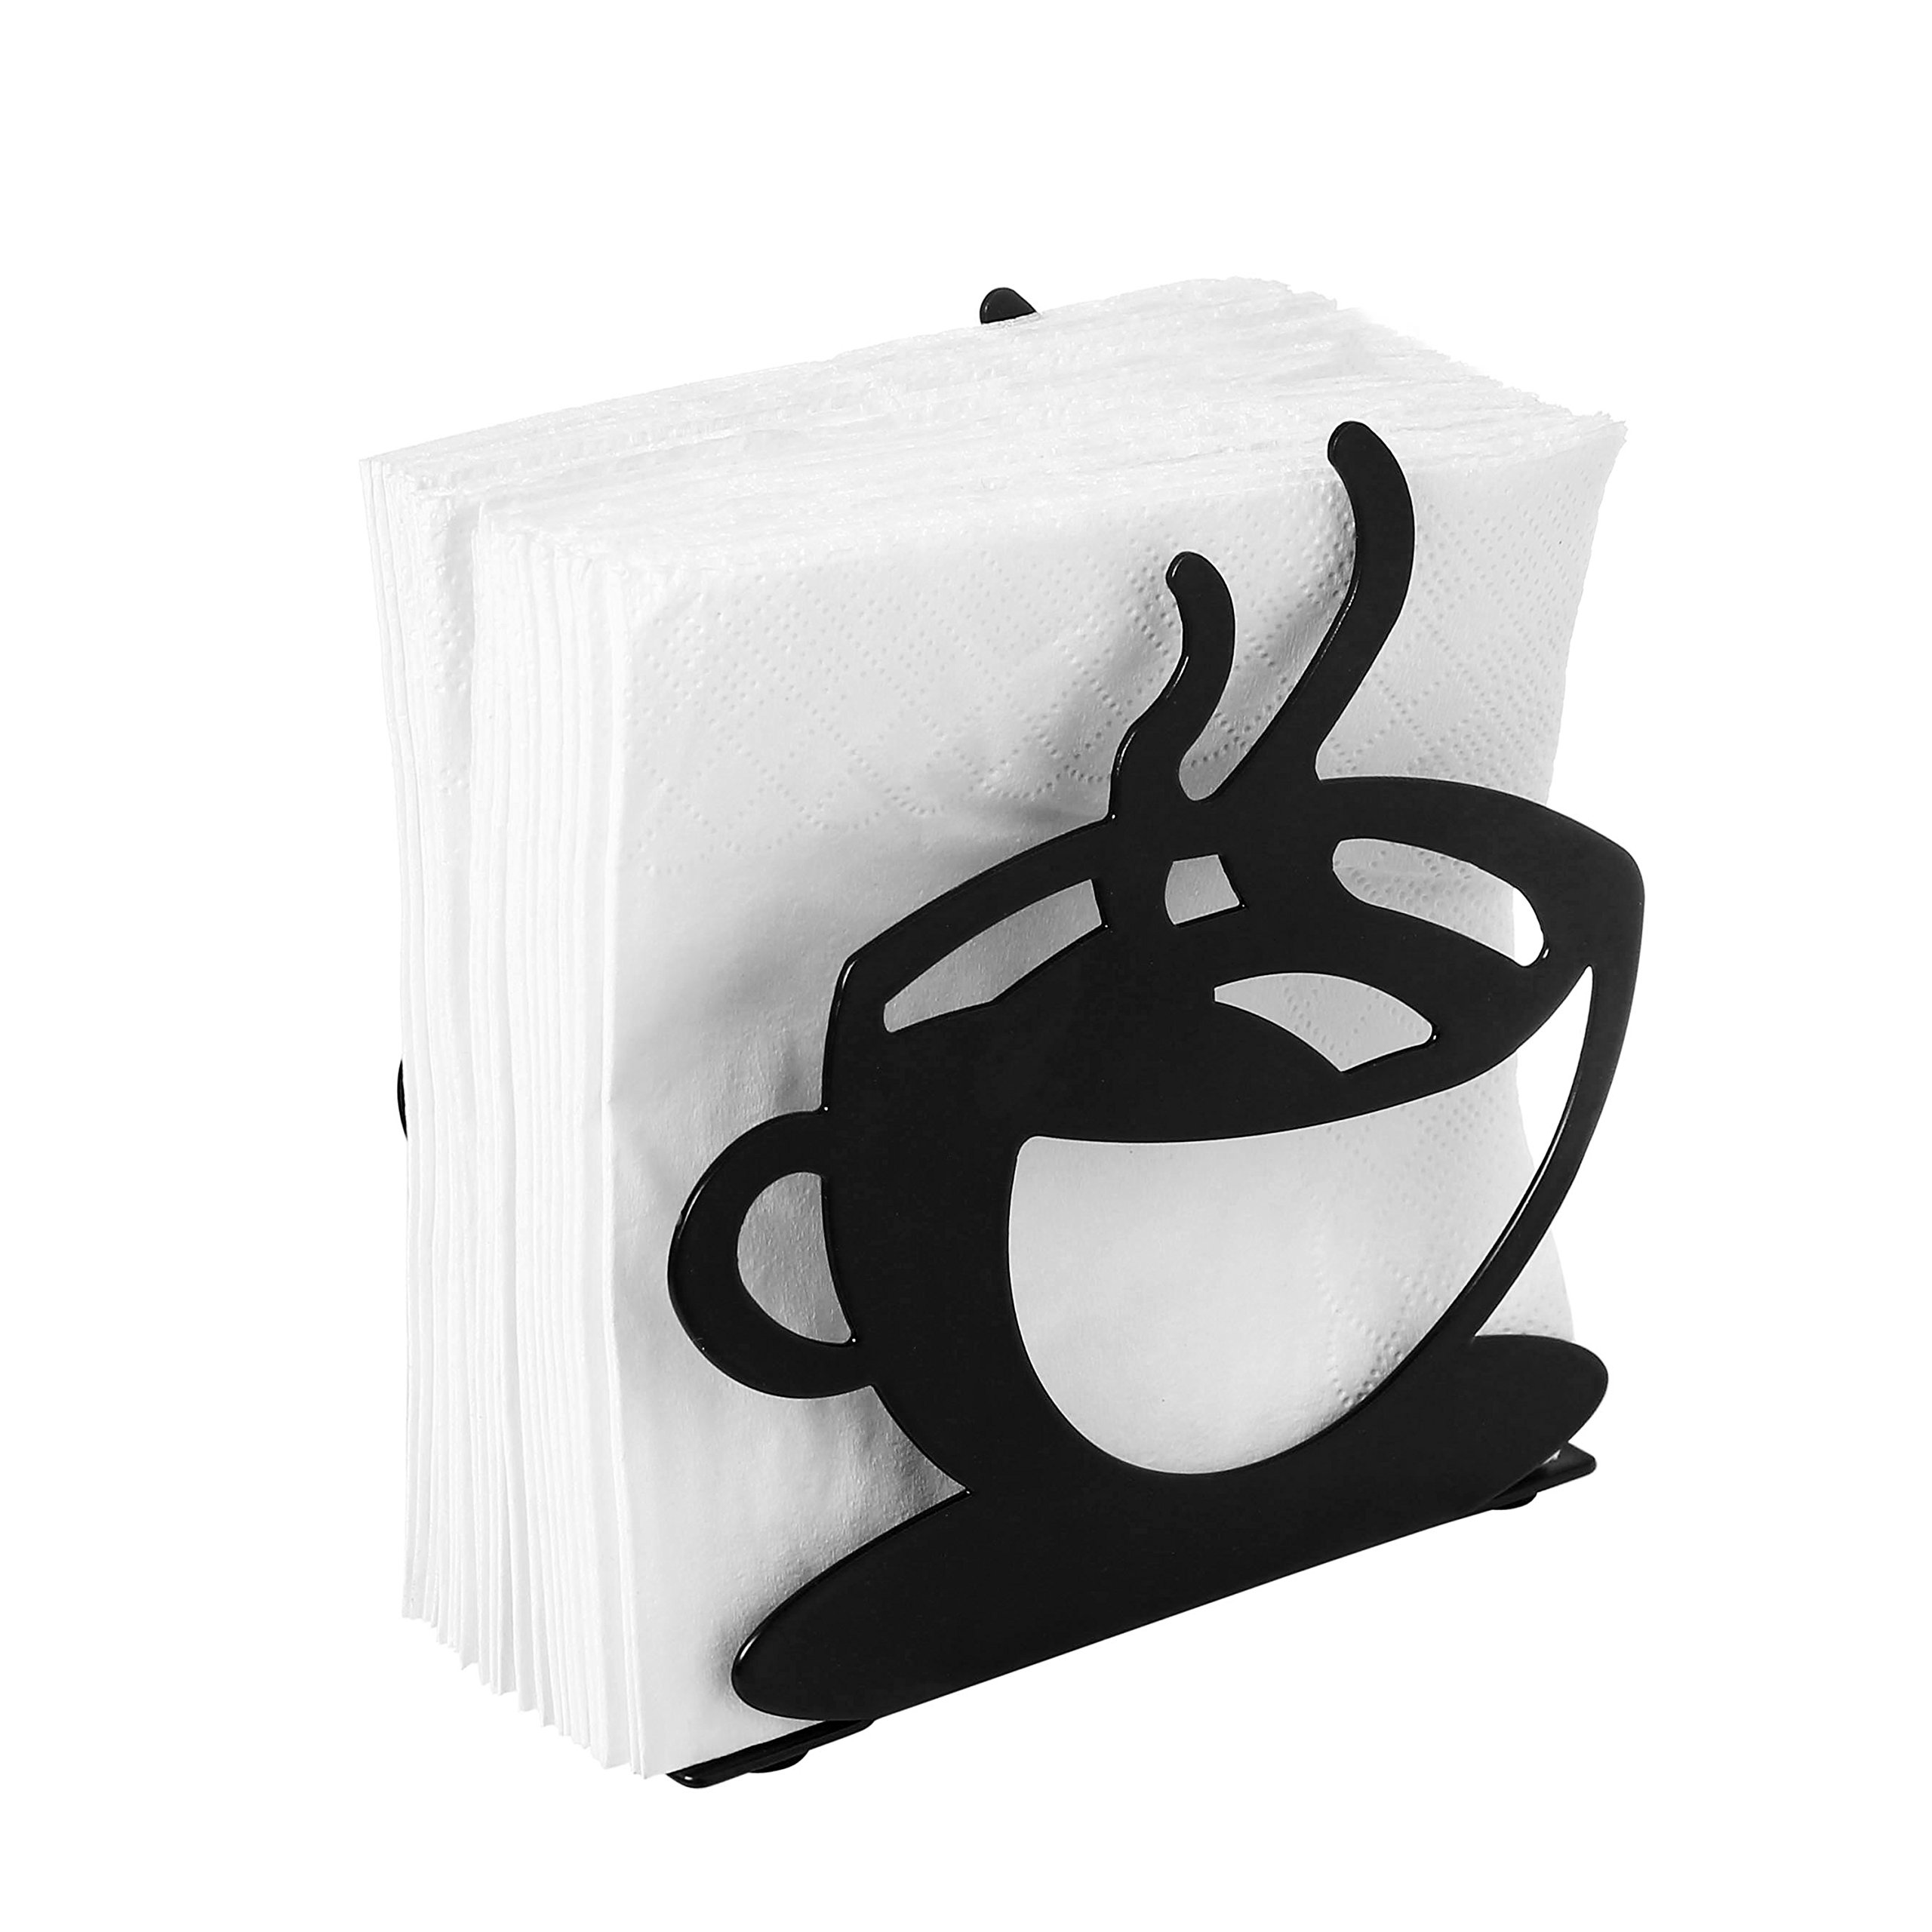 Tabletop Metal Coffee Cup Silhouette Upright Napkin Holder, Black